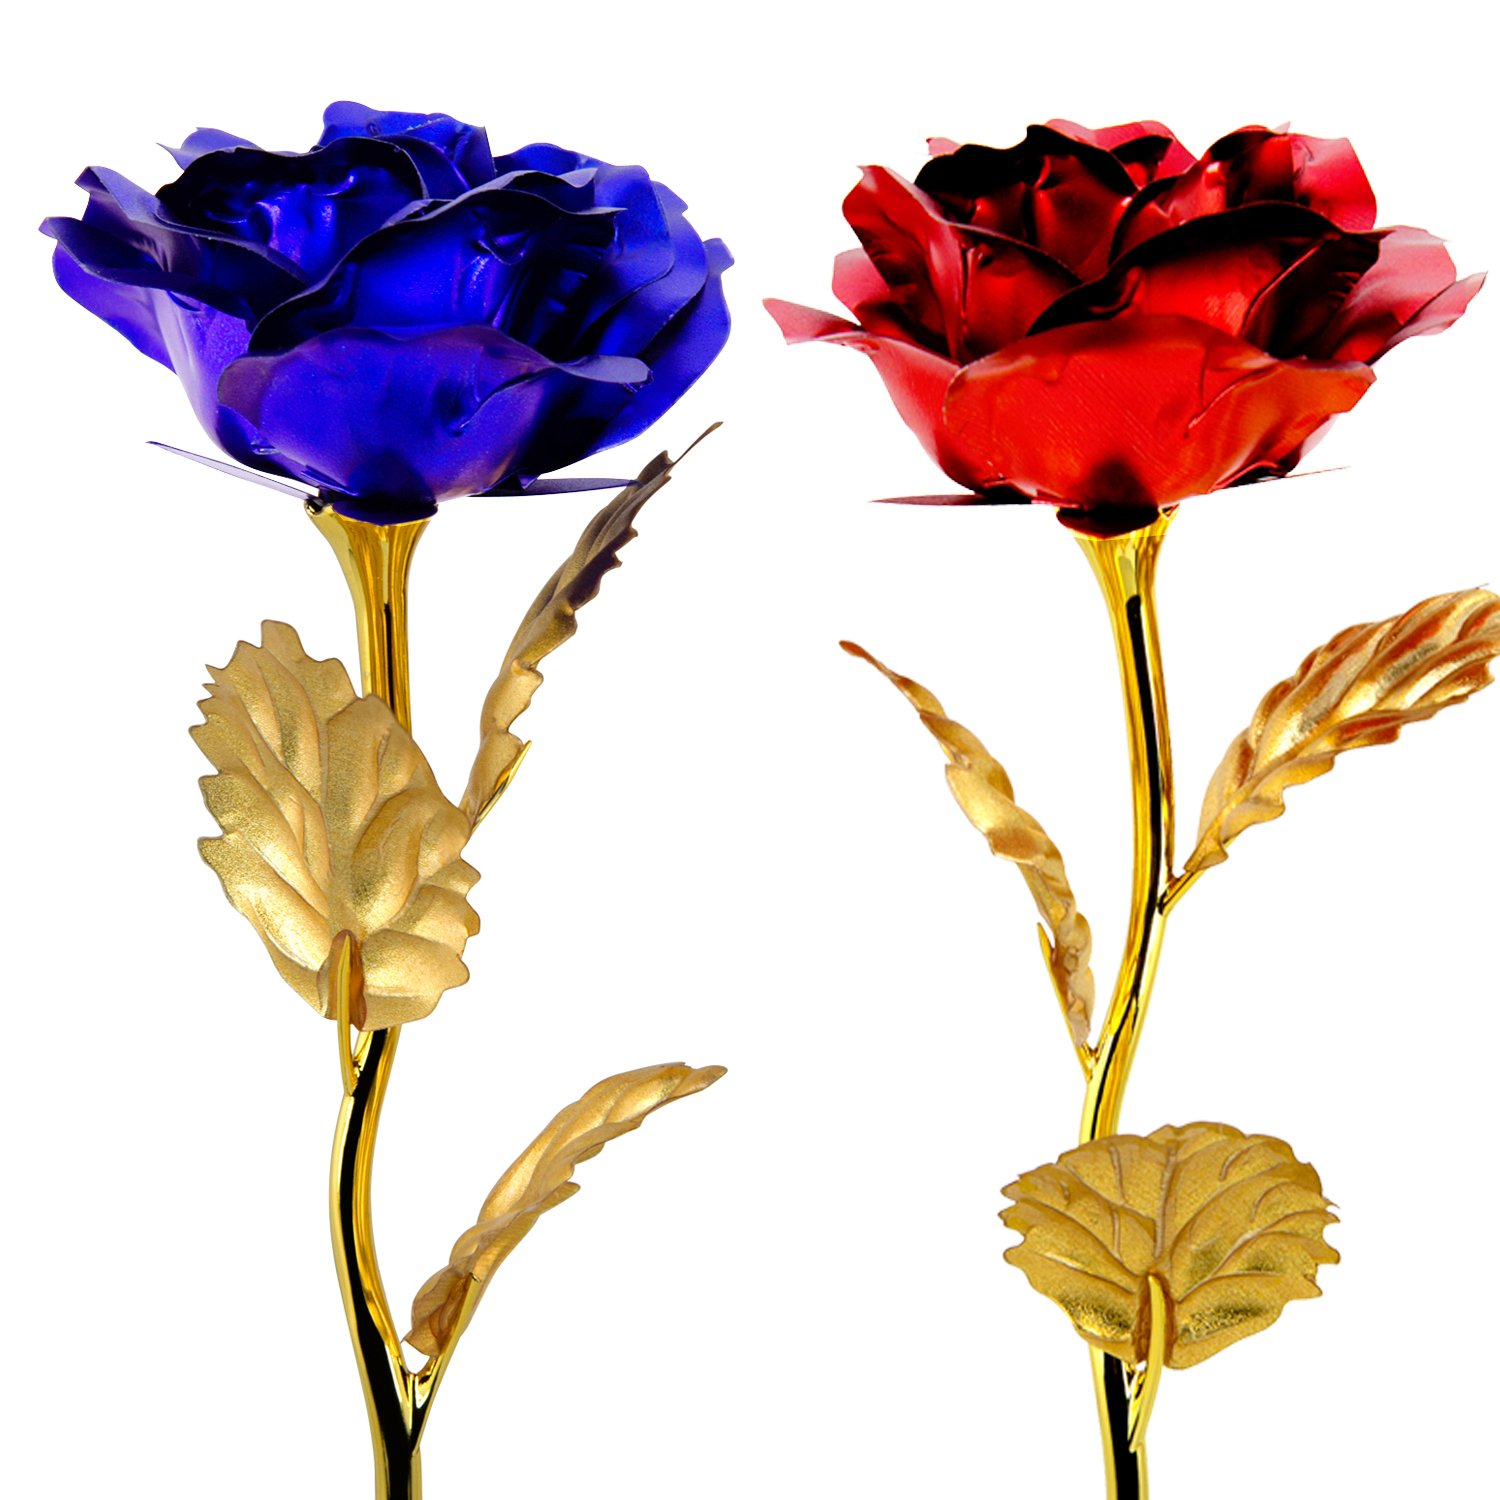 Get Quotations UniteStone Artificial Flowers In 2 Pack Roses For Her Birthday Gifts Anniversary Mothers